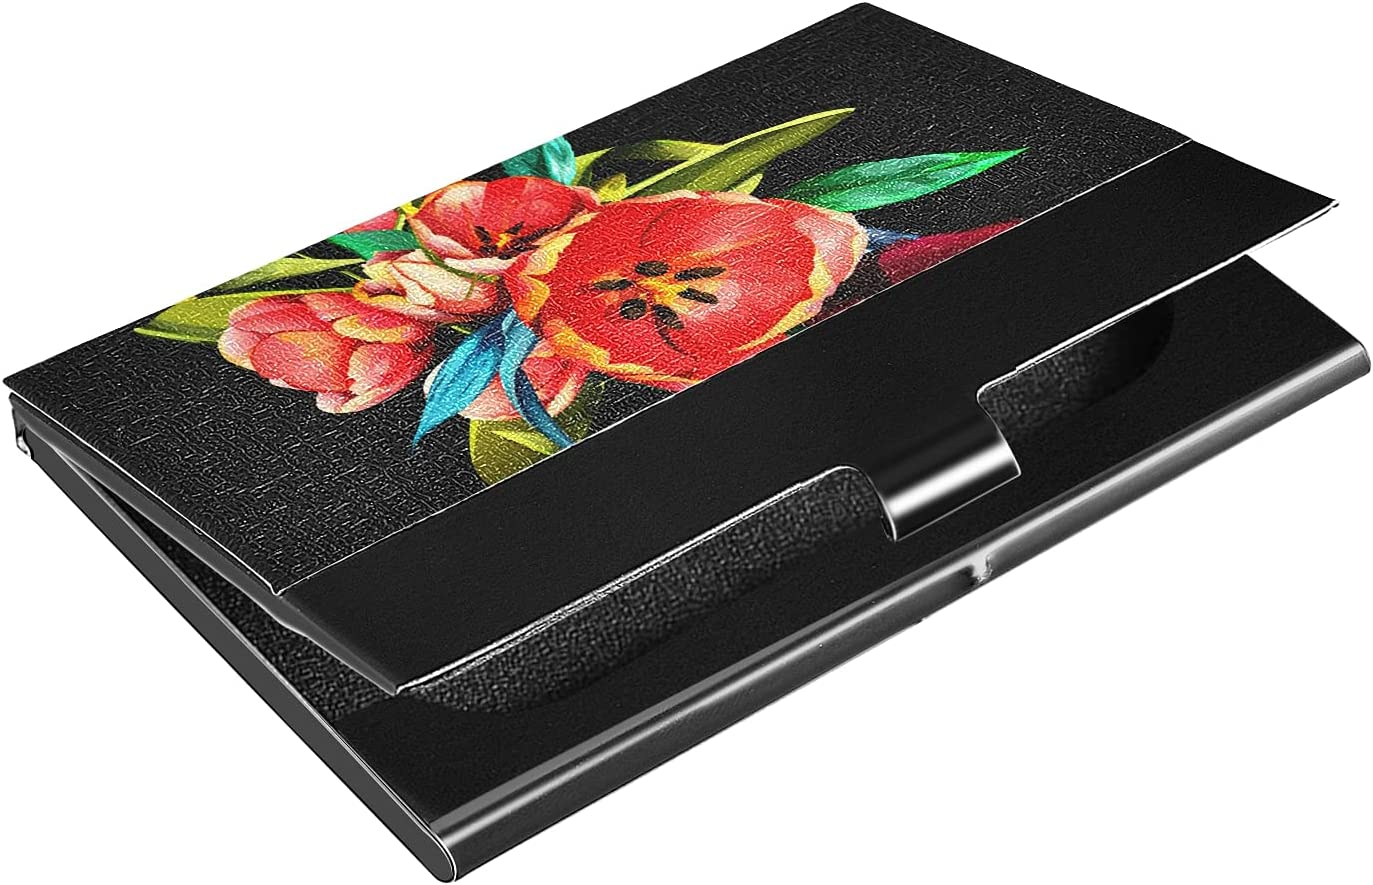 OTVEE Vintage Red Tulips Flowers Business Card Holder Wallet Stainless Steel & Leather Pocket Business Card Case Organizer Slim Name Card ID Card Holders Credit Card Wallet Carrier Purse for Women Men